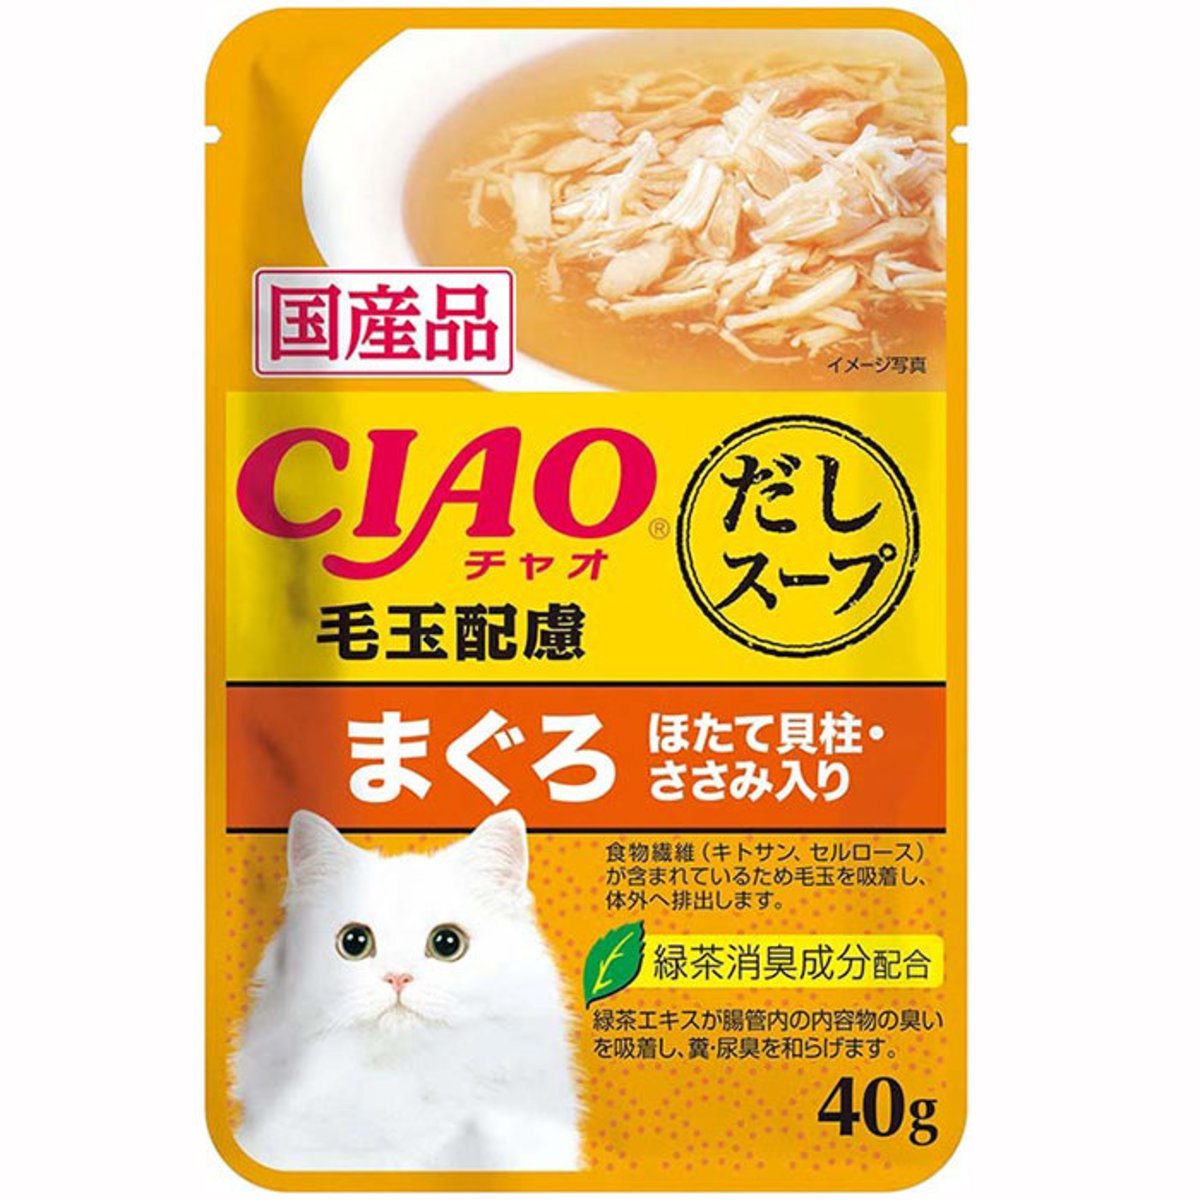 Soup Cat Food - Chicken Fillet & Maguro Topping Scallop with Fiber 40g (Gold Soup Orange)